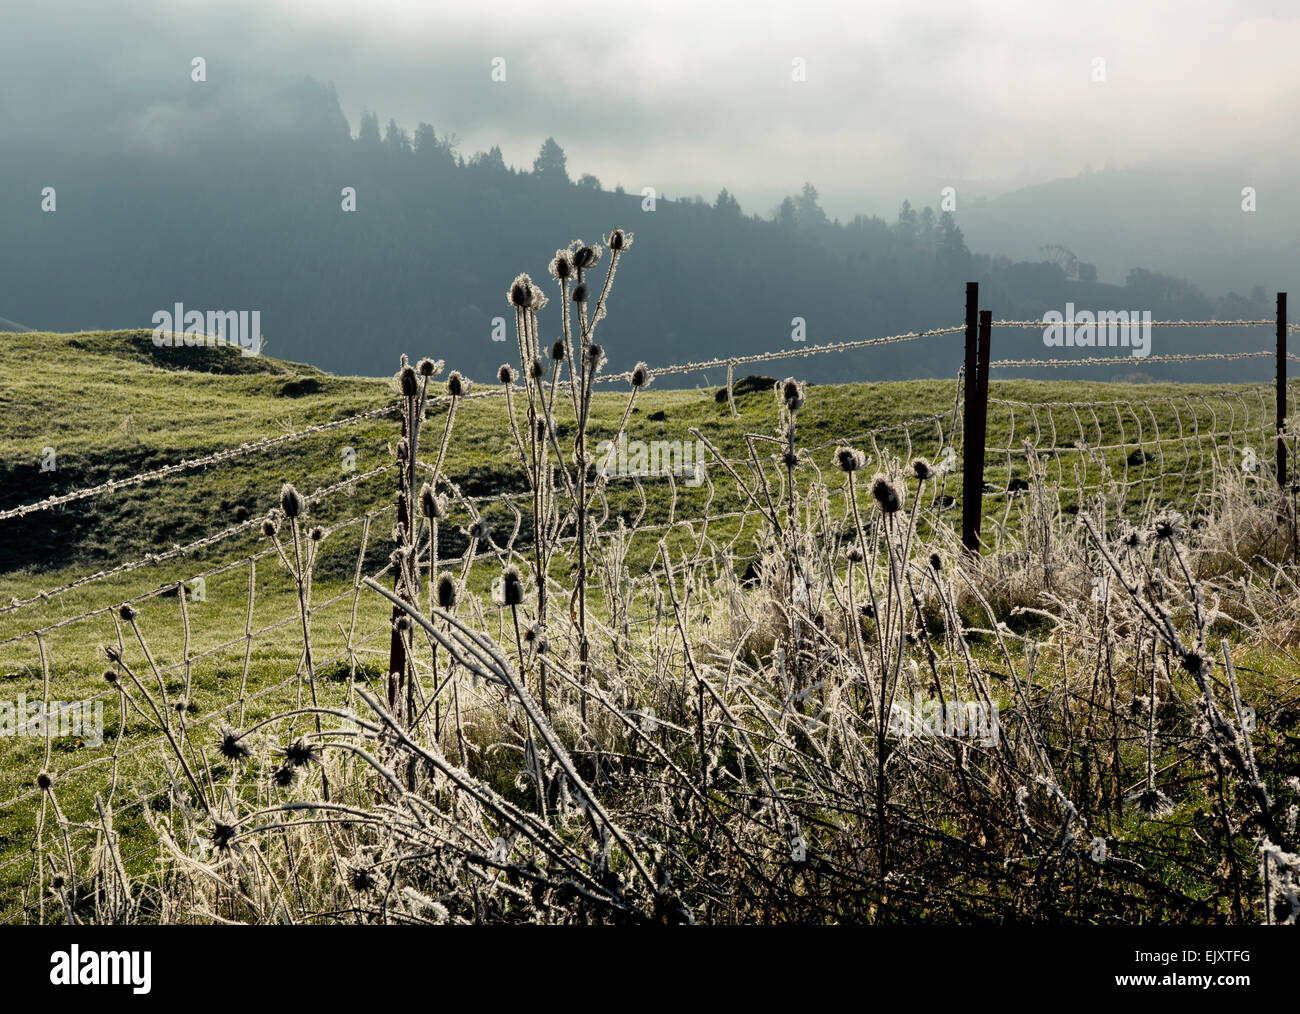 OR02090-00...OREGON - Frost covered thistles along a barbwire fence in the North Fork Umpqua River Valley. - Stock Image